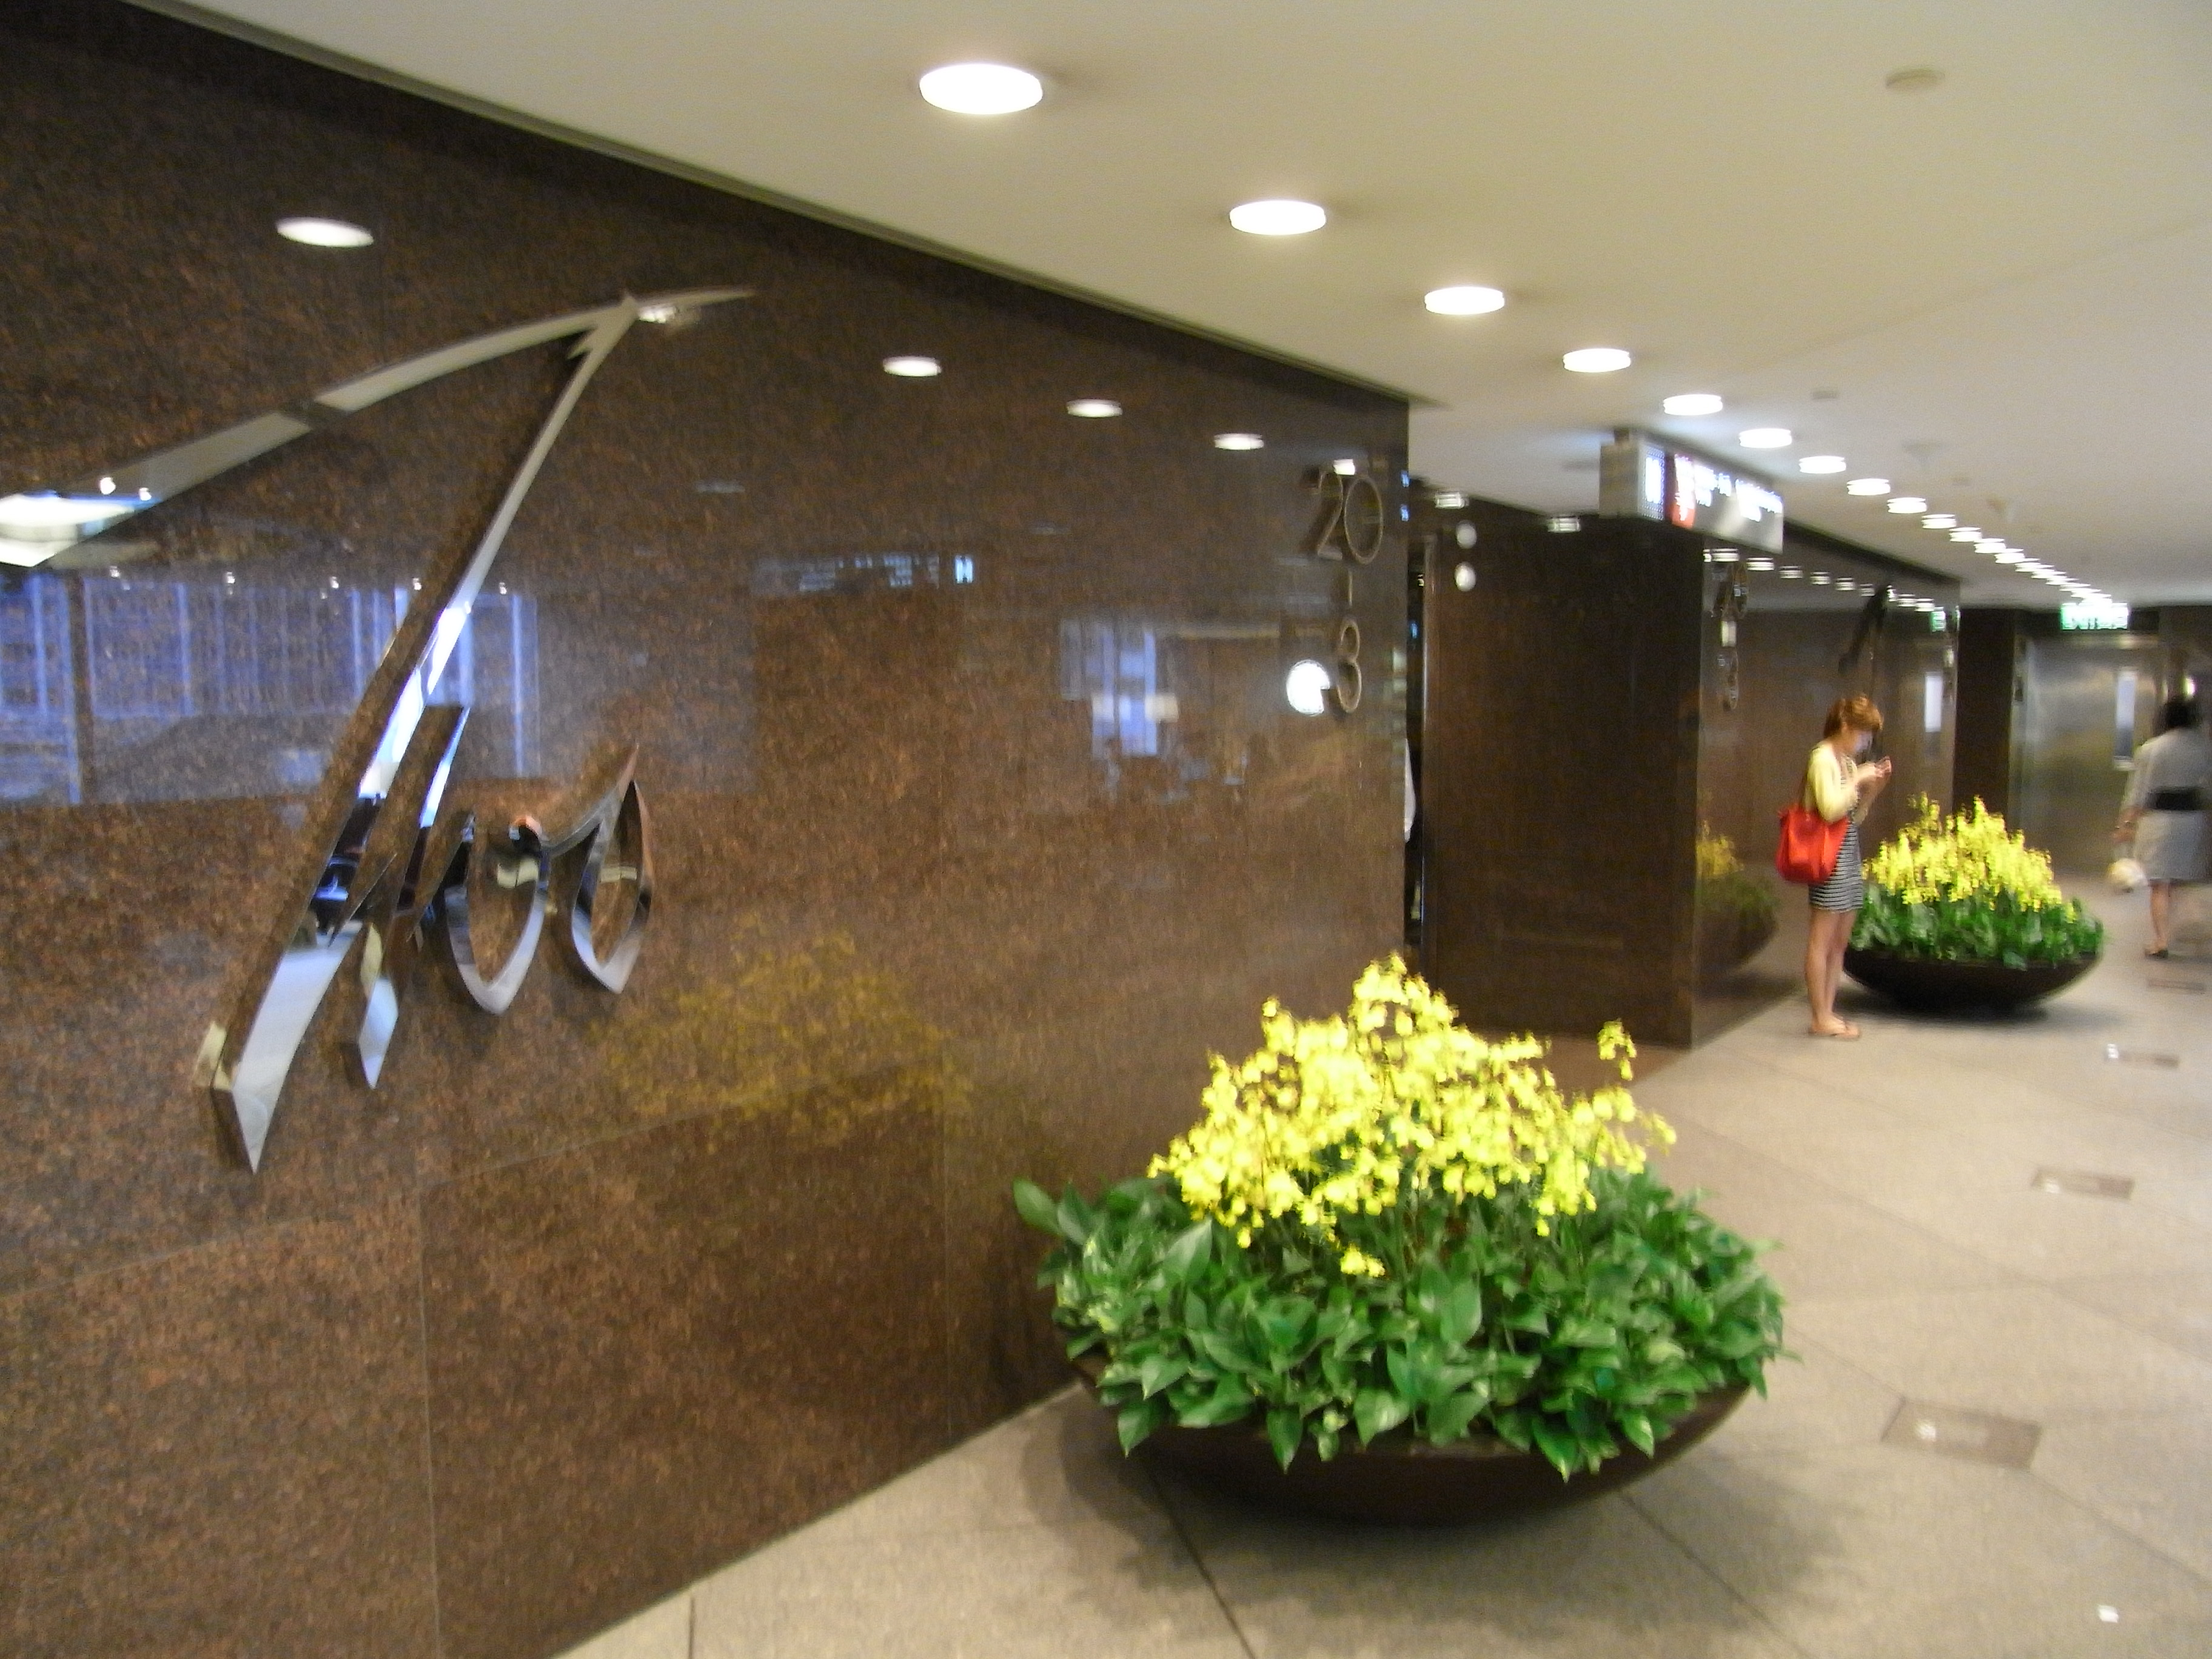 File:HK Central 中環 交易廣場 02 Exchange Square lobby hall visitor on